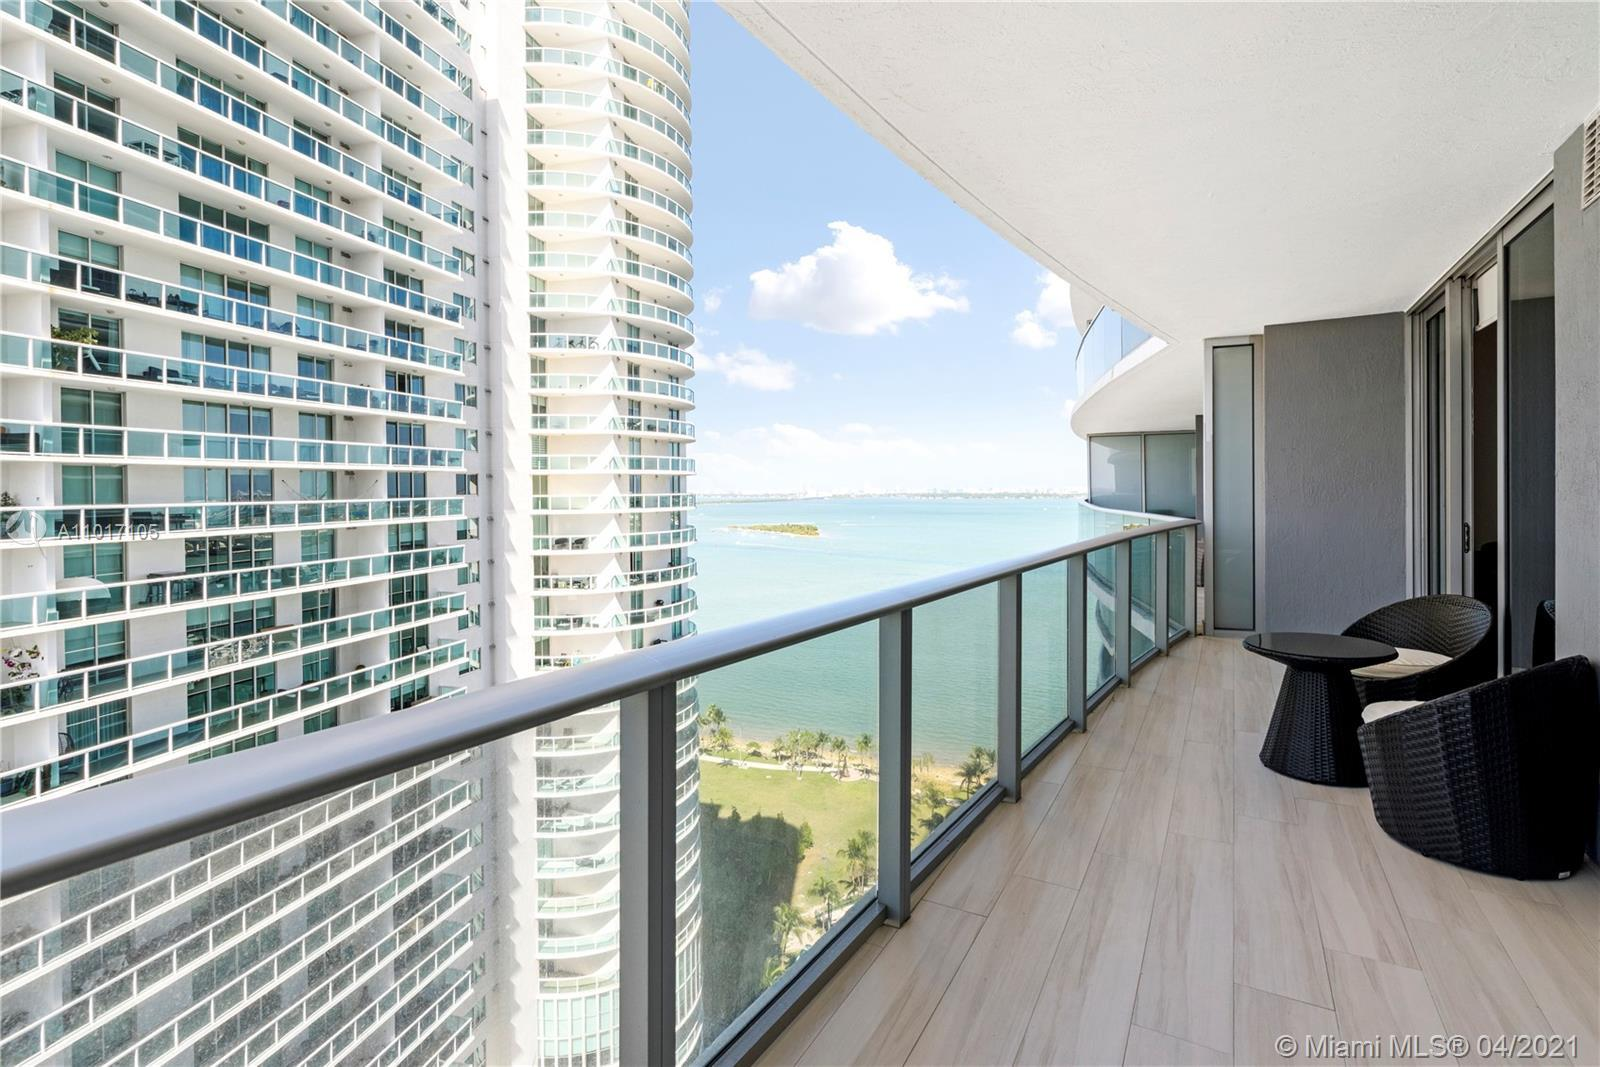 Luxurious Brand New Condo with Spacious 1 BEDROOM + 1 DEN / 2 FULL BATH and a large balcony overlook